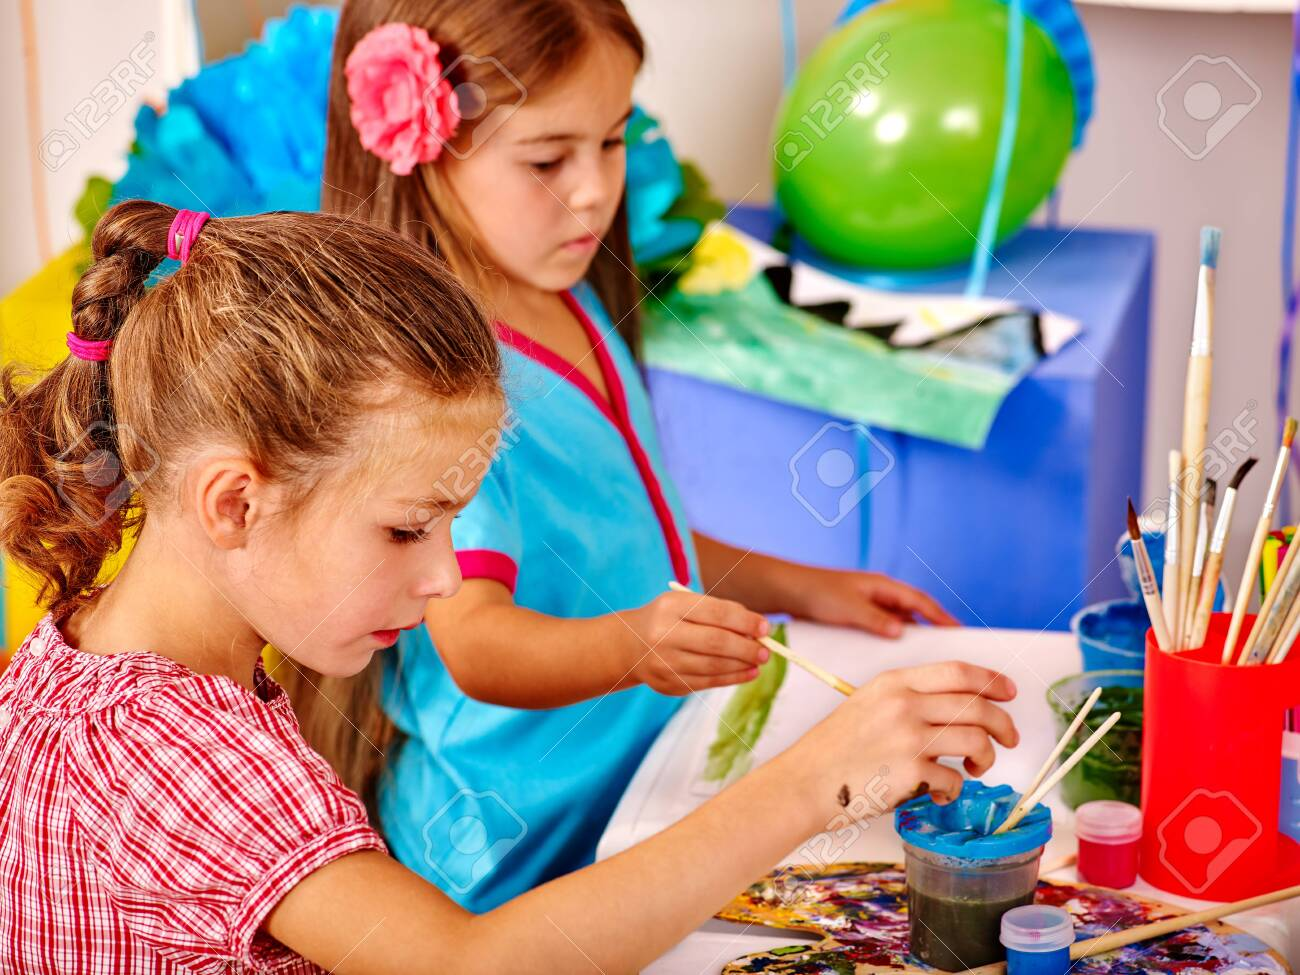 Girls keep brush painting on table in kindergarten . Painting learning. - 122228780